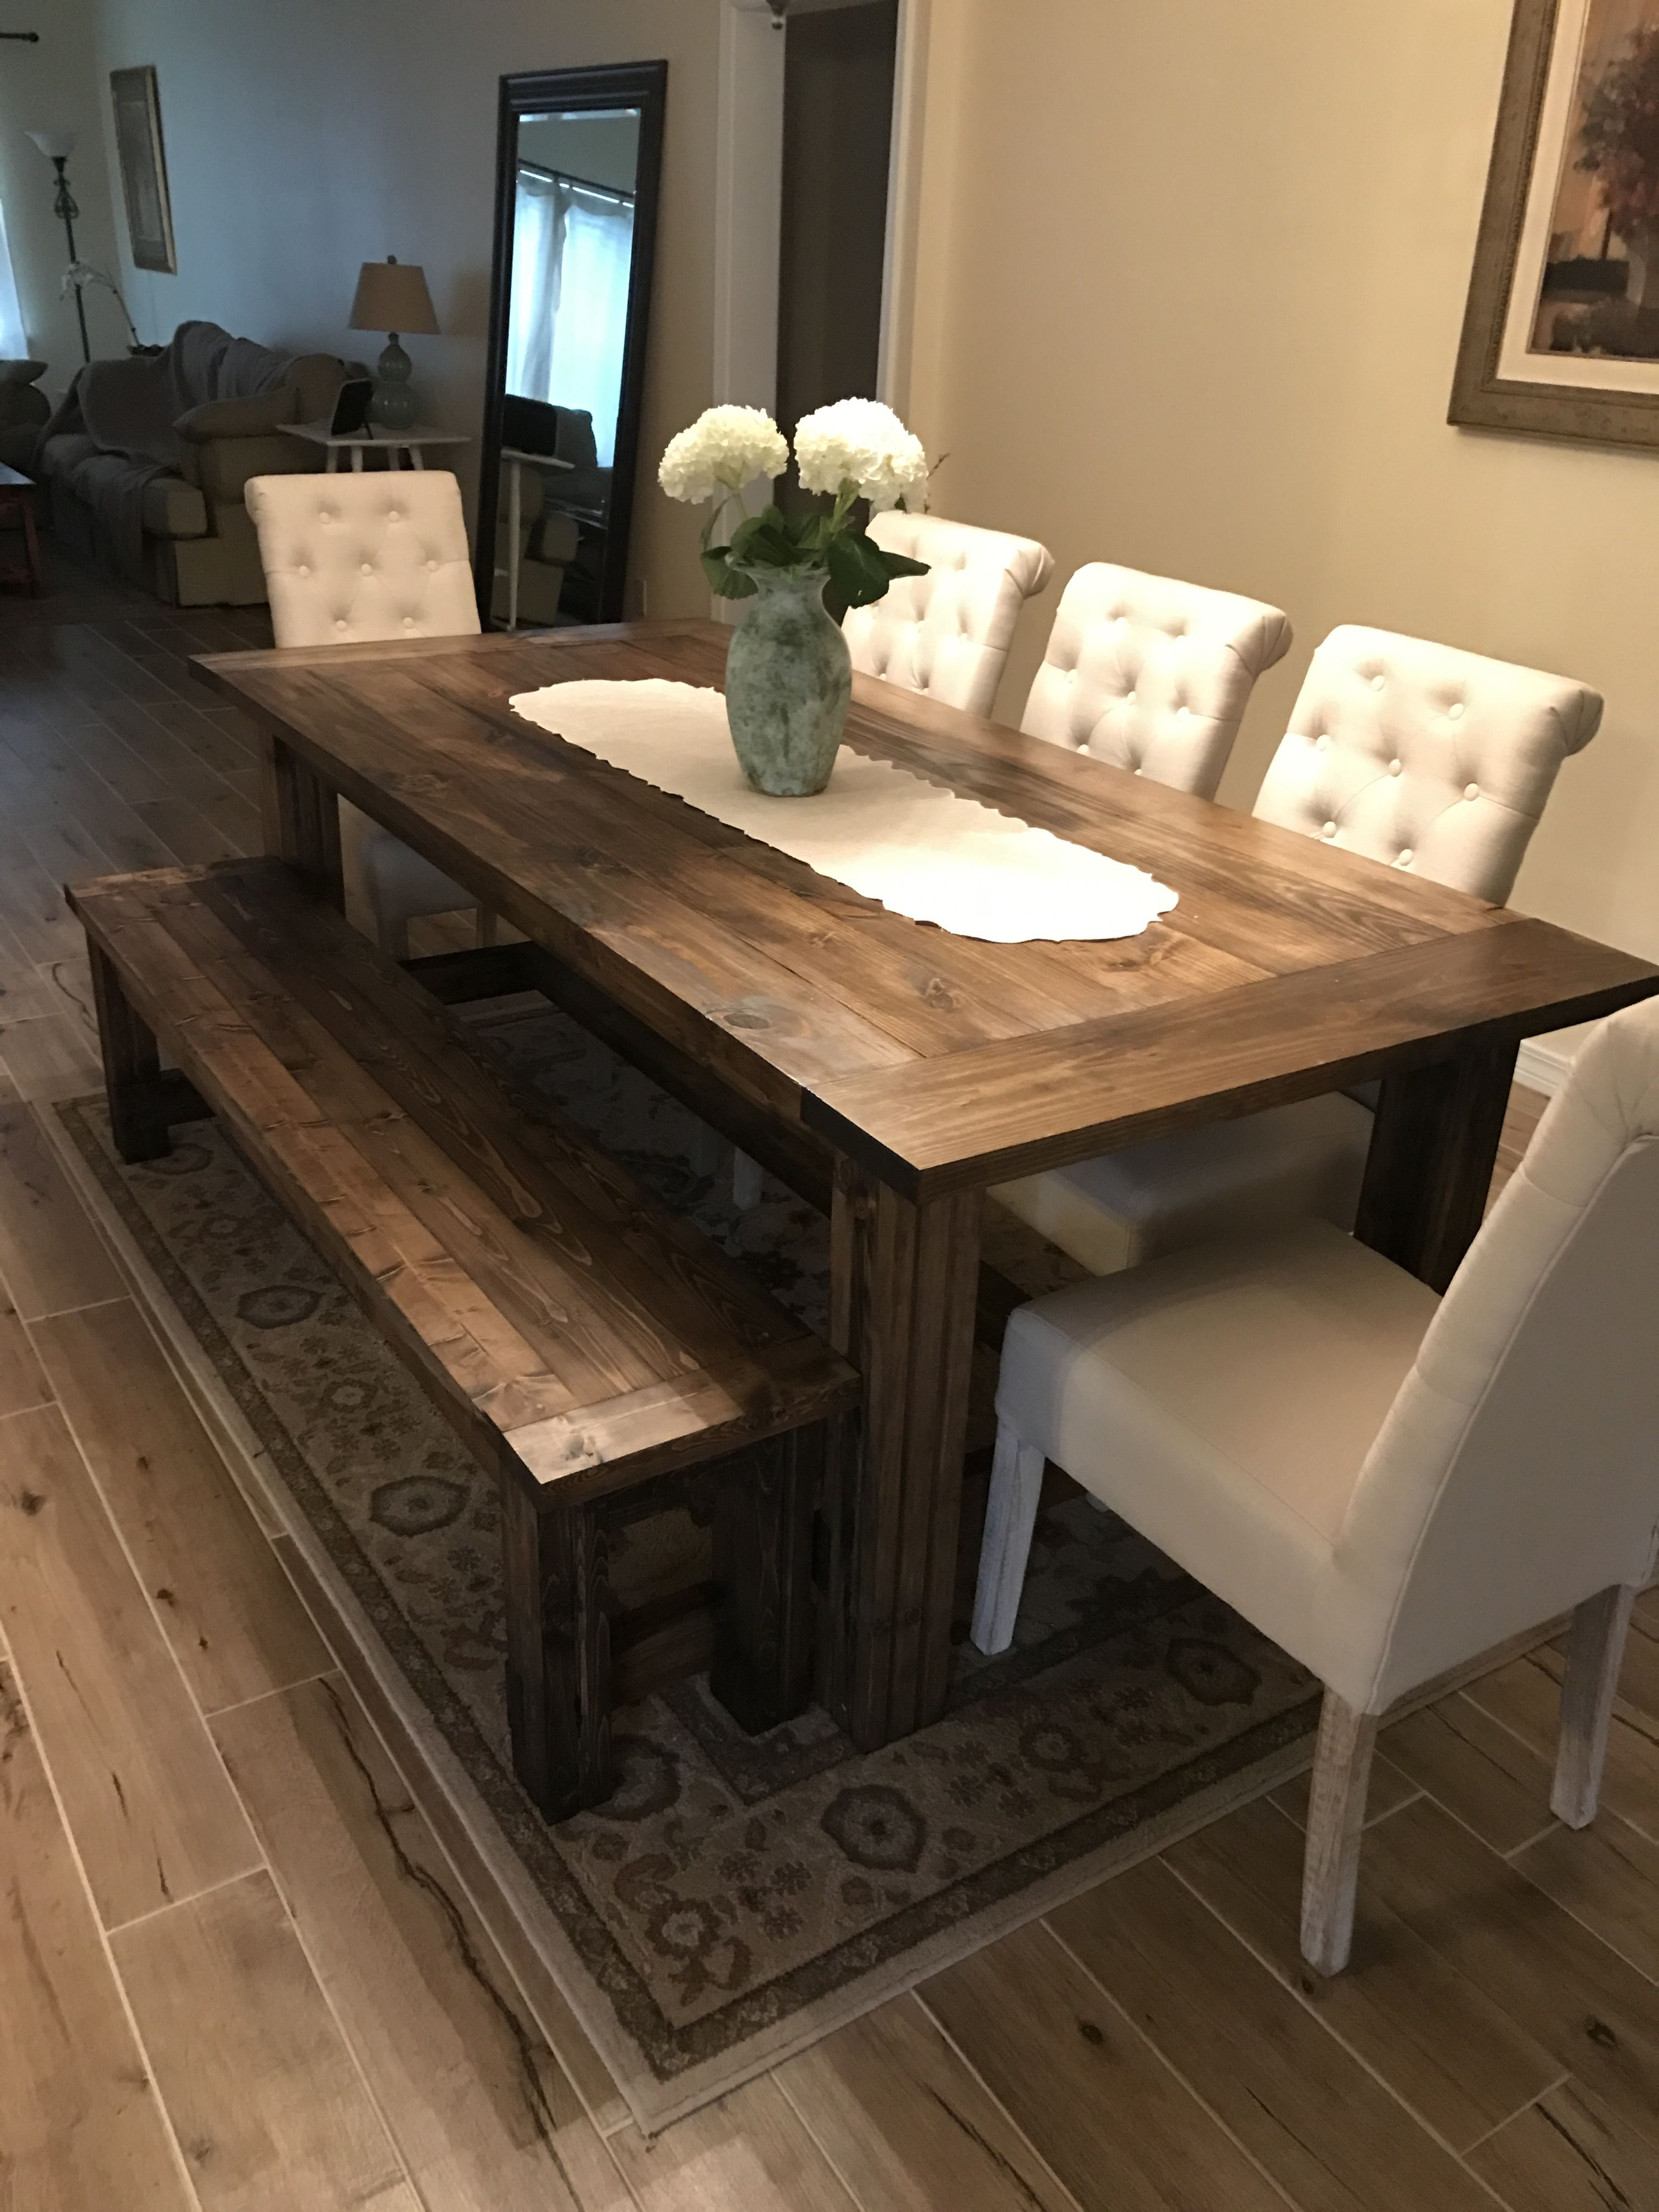 Ana White Farmtable And Bench Diy Projects In 2020 Farmhouse Kitchen Tables Dining Room Remodel Dining Table Design